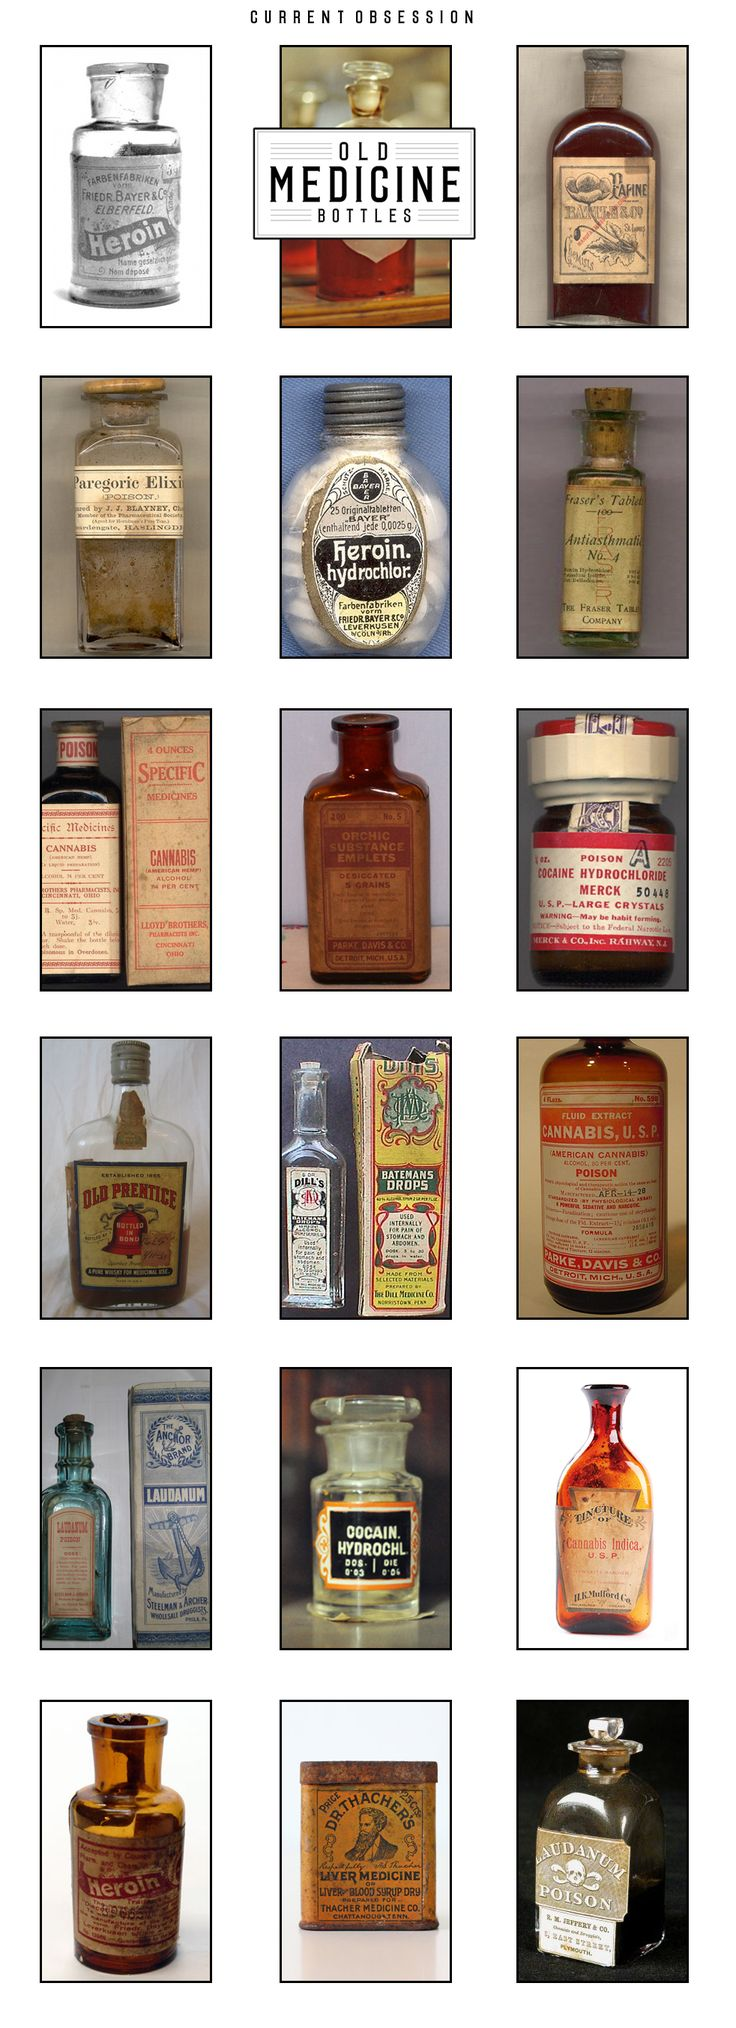 Vintage medicine bottles. https://pinterest.com/pin/287386019941481568 https://pinterest.com/pin/287386019944836006 https://pinterest.com/pin/287386019945498777 https://pinterest.com/pin/287386019948958121 https://pinterest.com/pin/287386019943253139 https://pinterest.com/pin/287386019946654207 https://pinterest.com/pin/287386019943053101 https://pinterest.com/pin/287386019945002770